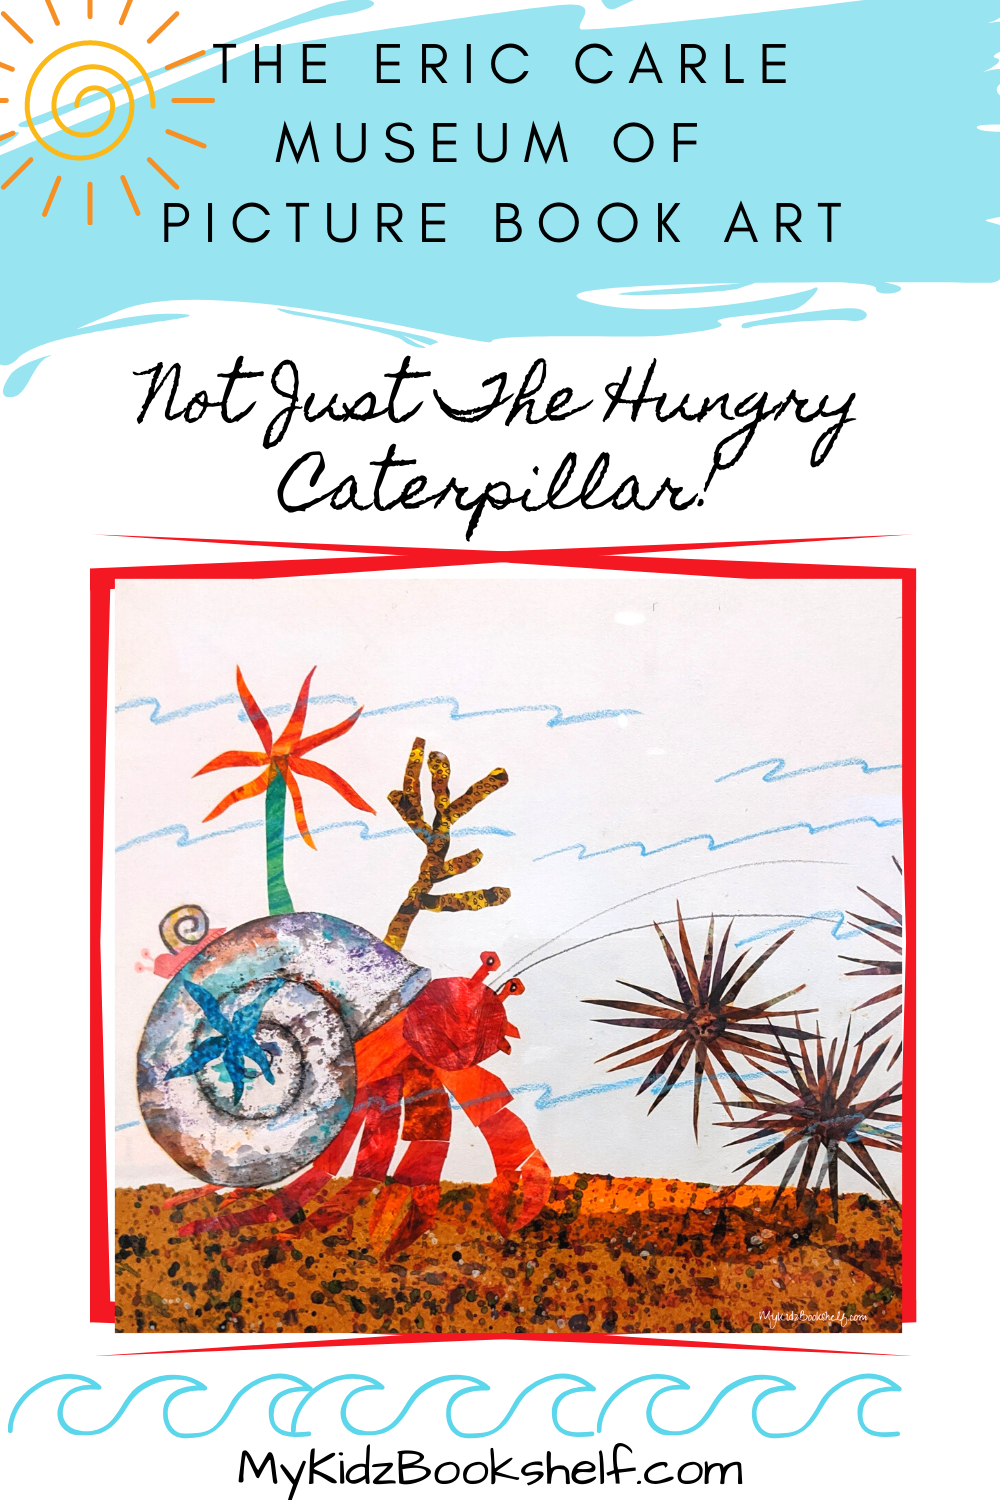 Pinterest Pin The Eric Carle Museum of Picture Book Art